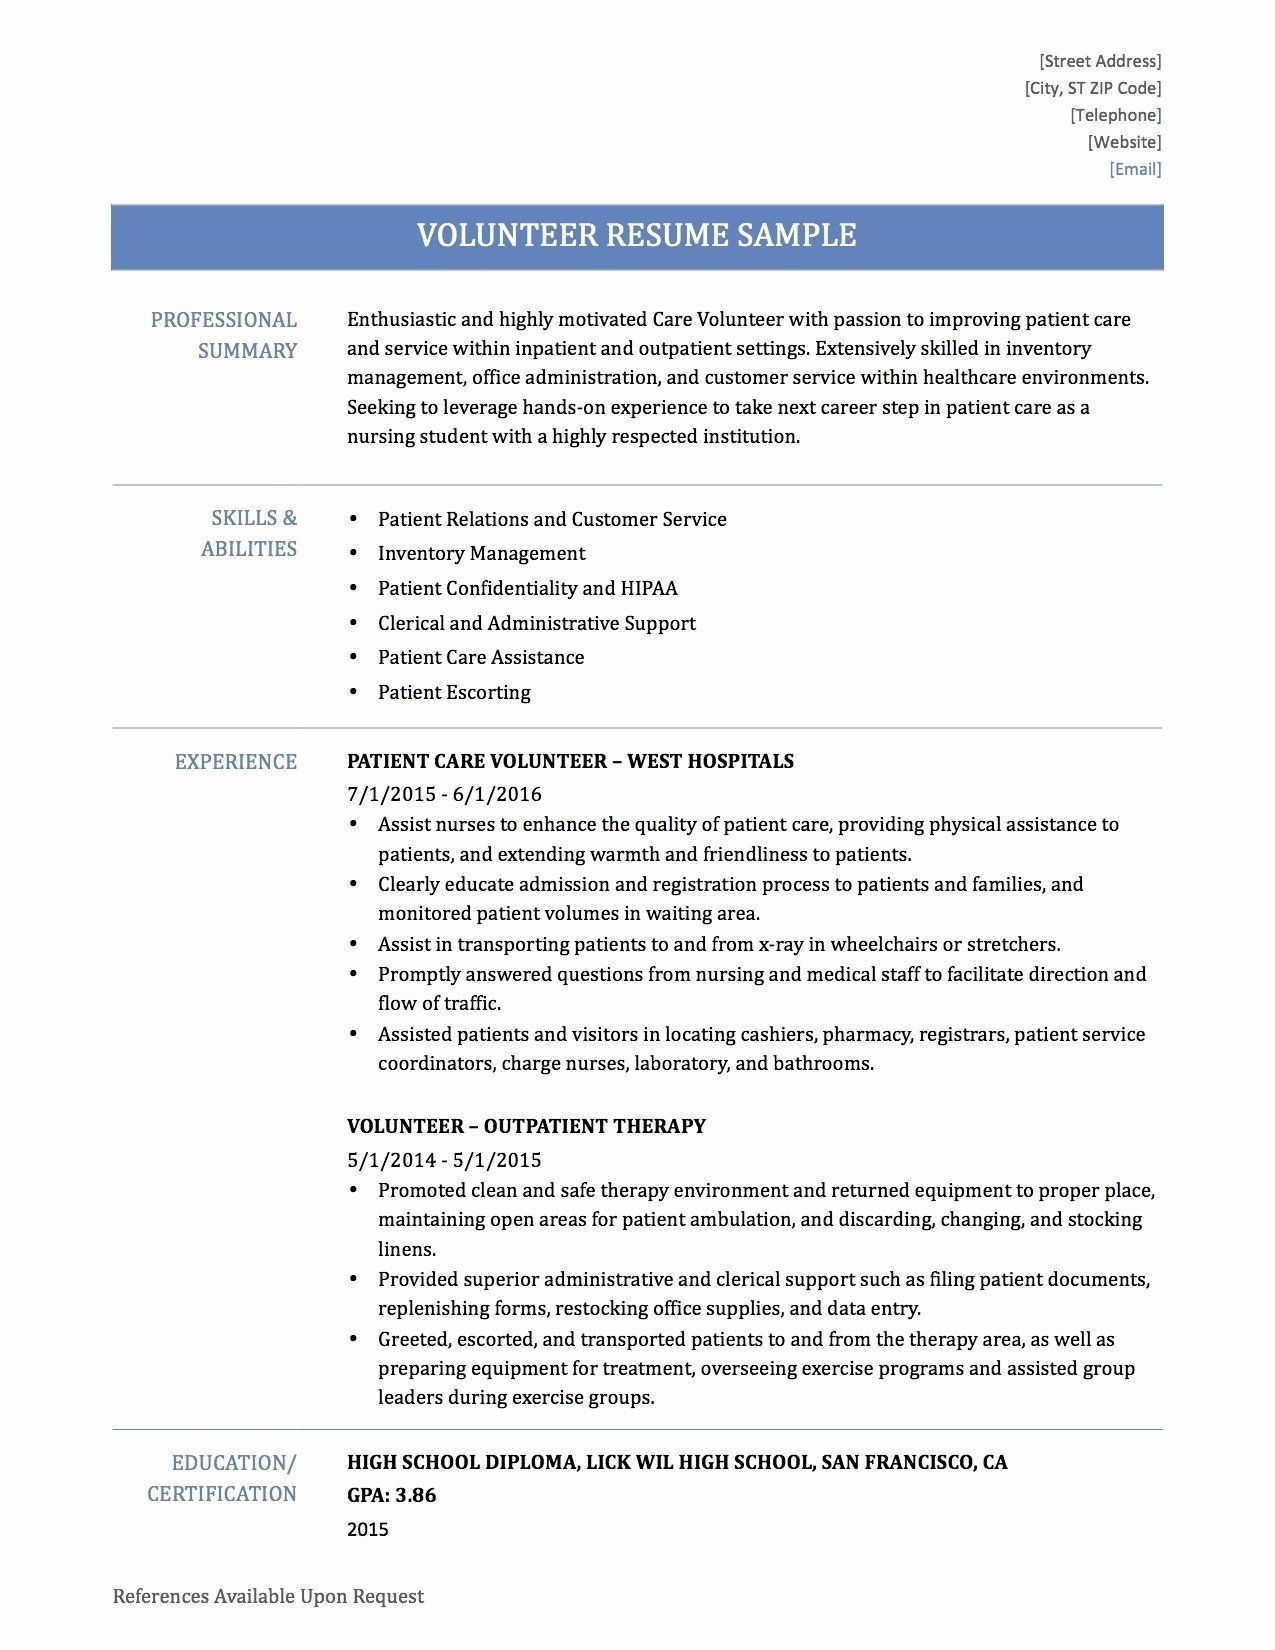 Volunteer Resume Examples Resume Job Cover Letter